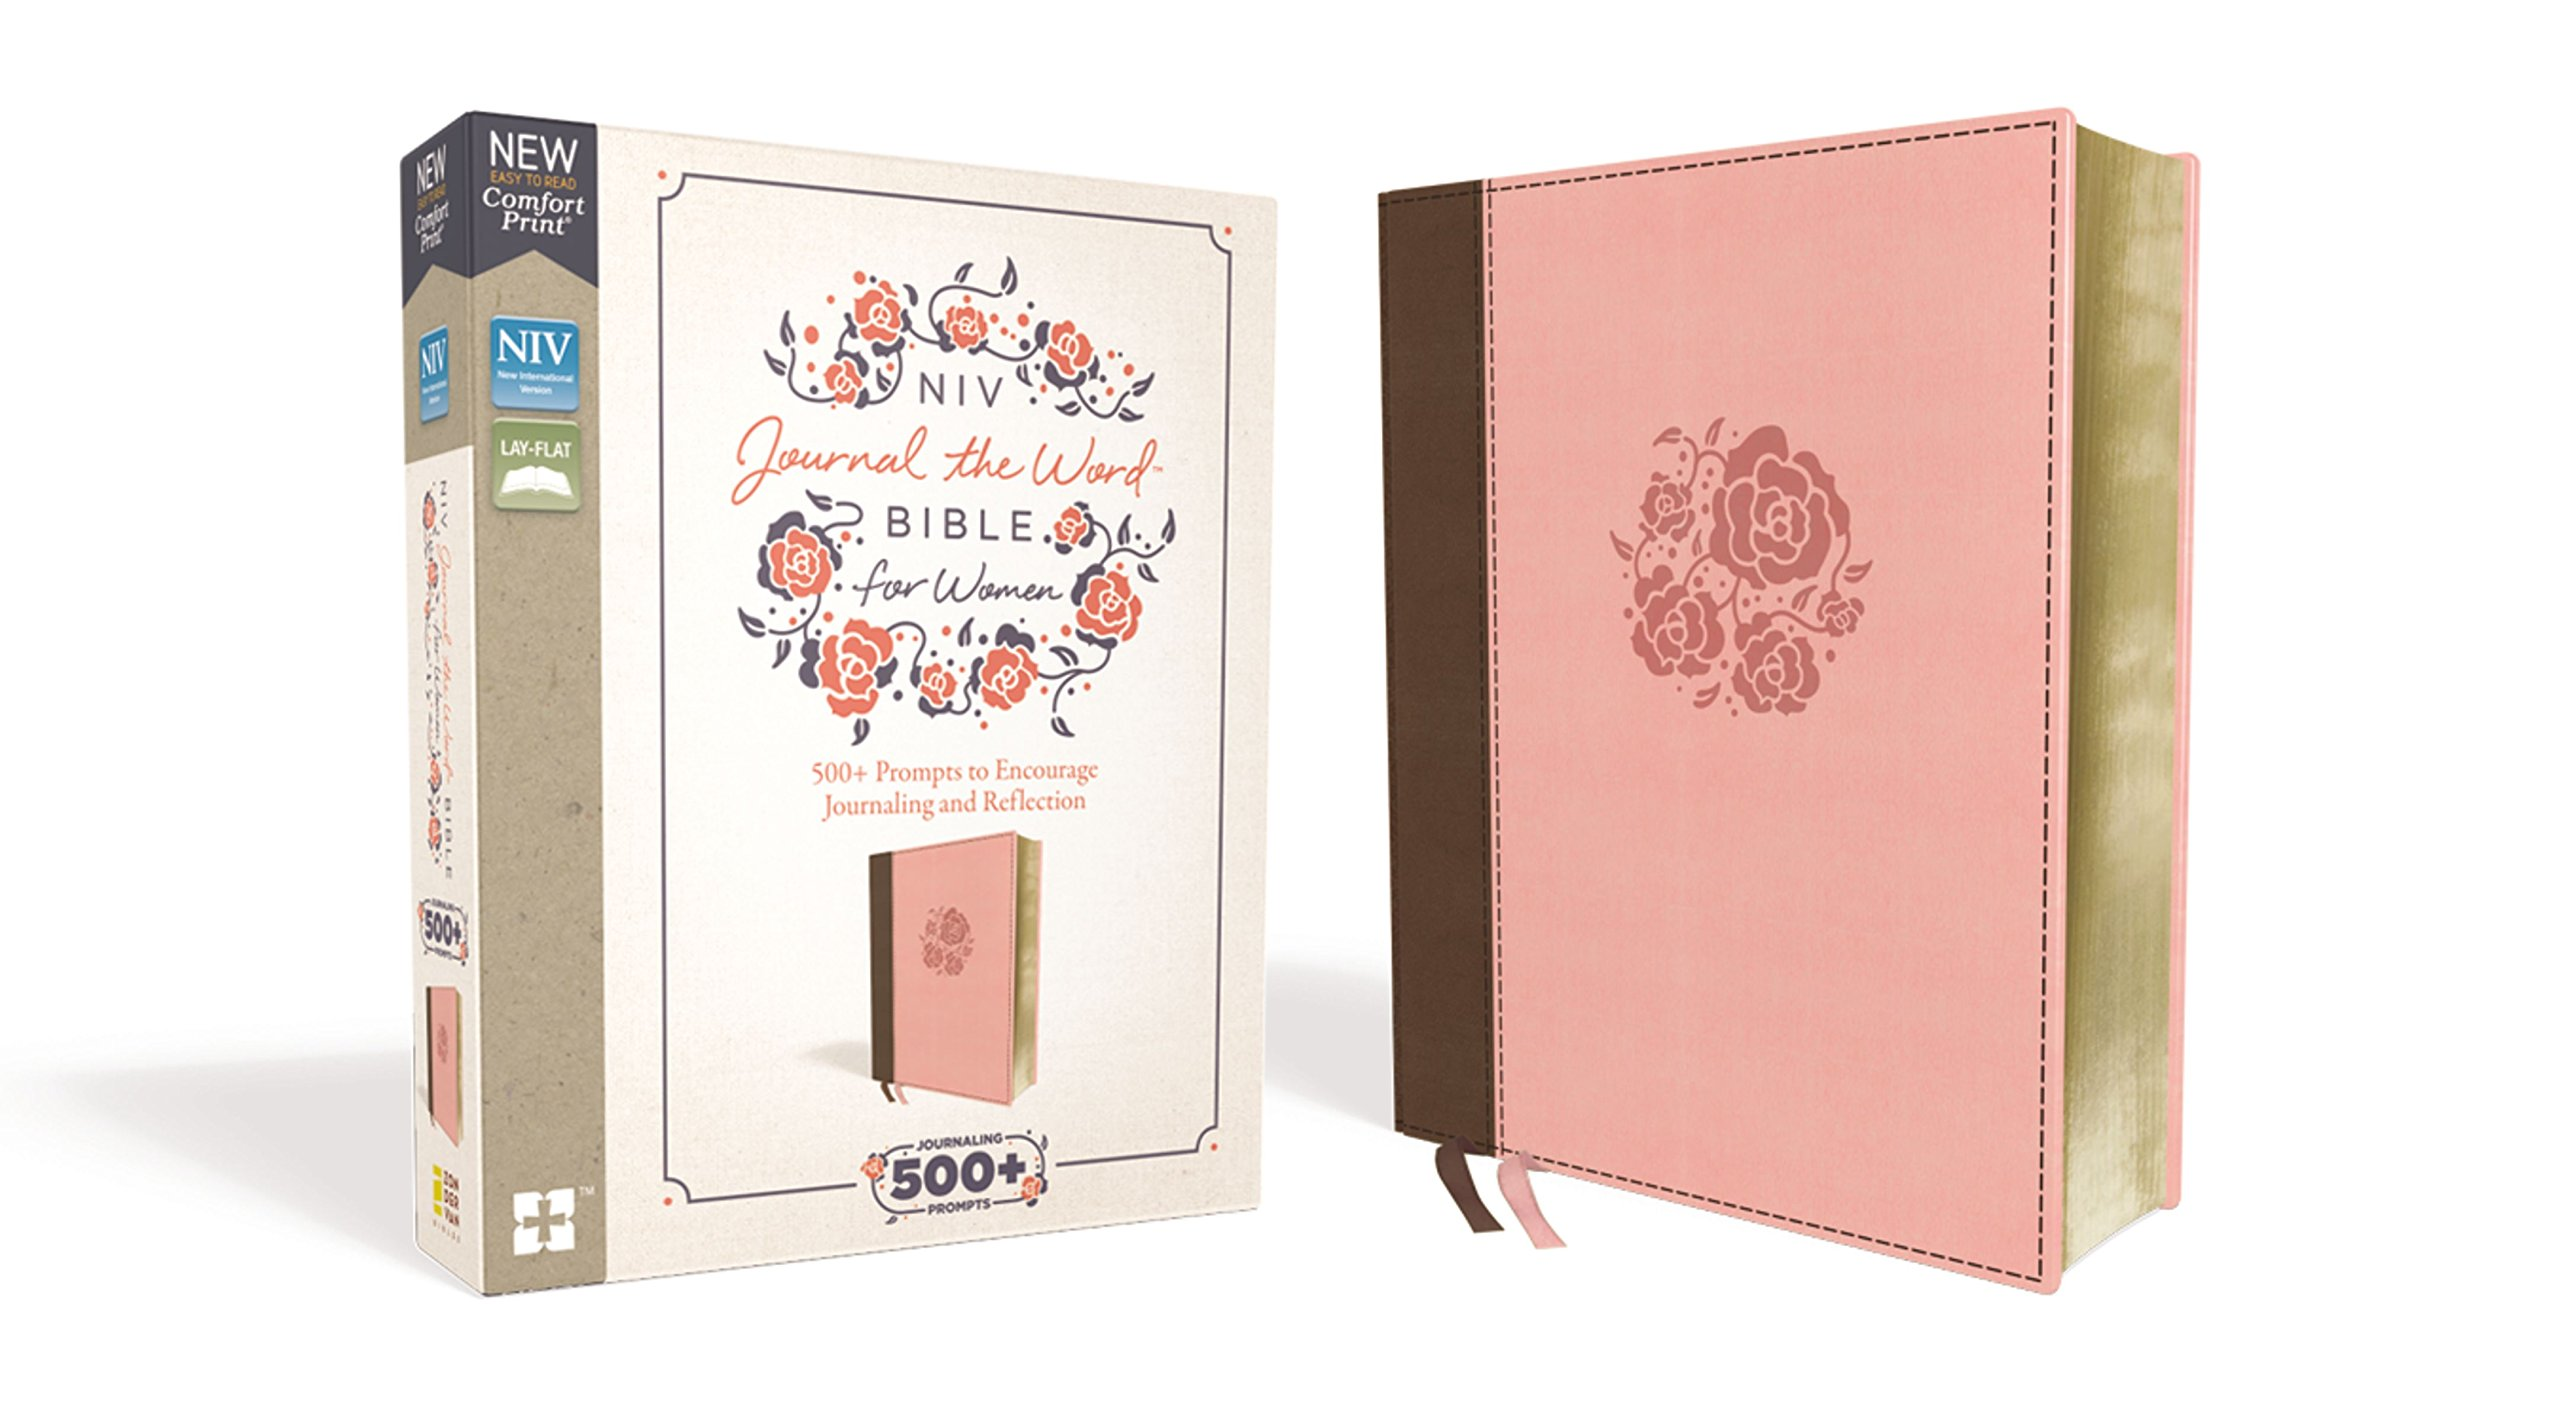 NIV, Journal the Word Bible for Women, Leathersoft, Brown/Pink, Red Letter Edition, Comfort Print: 500+ Prompts to Encourage Journaling and Reflection by HarperCollins Christian Pub.